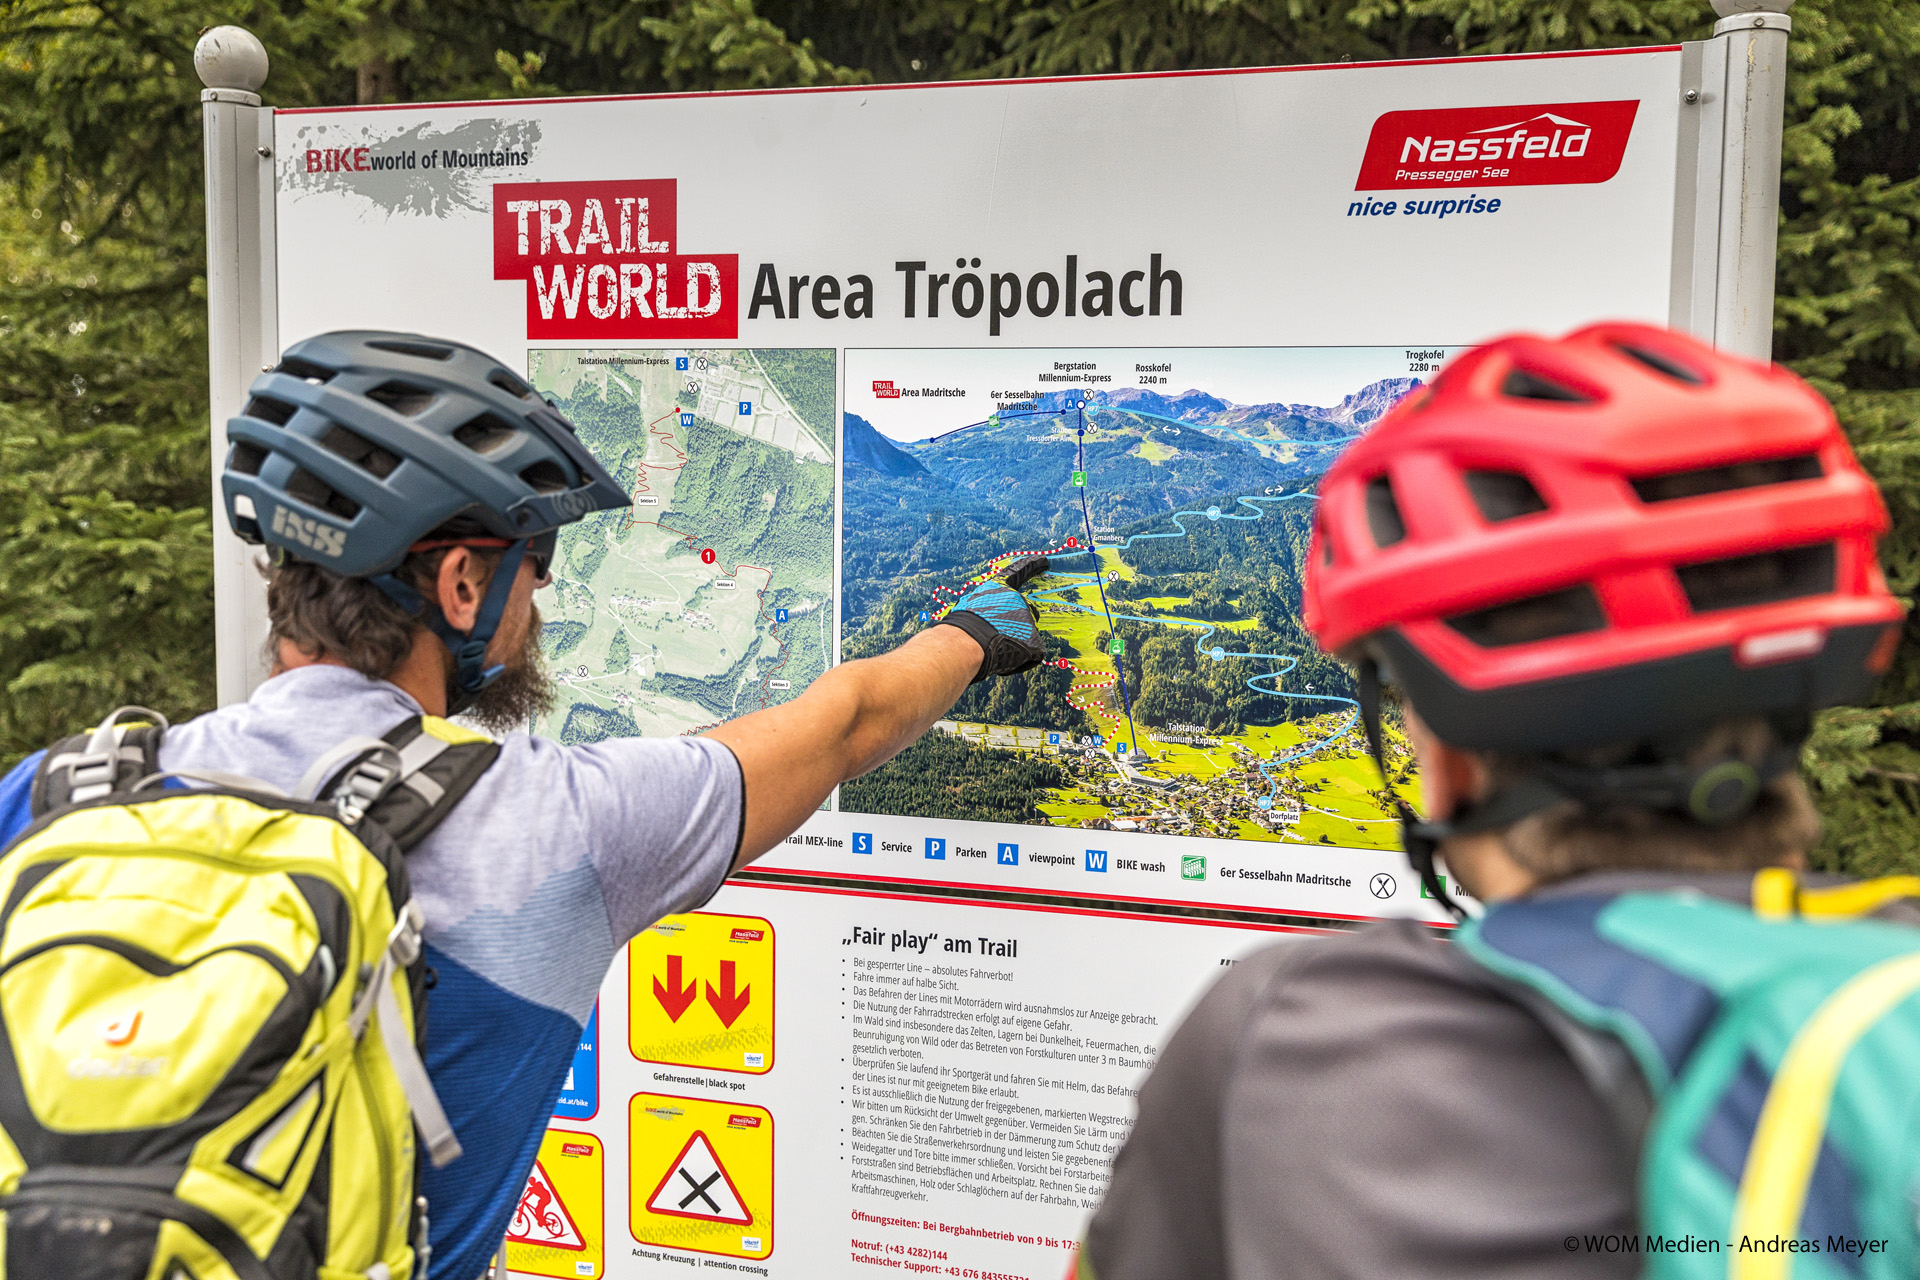 Signature Trail - Nassfeld - videos